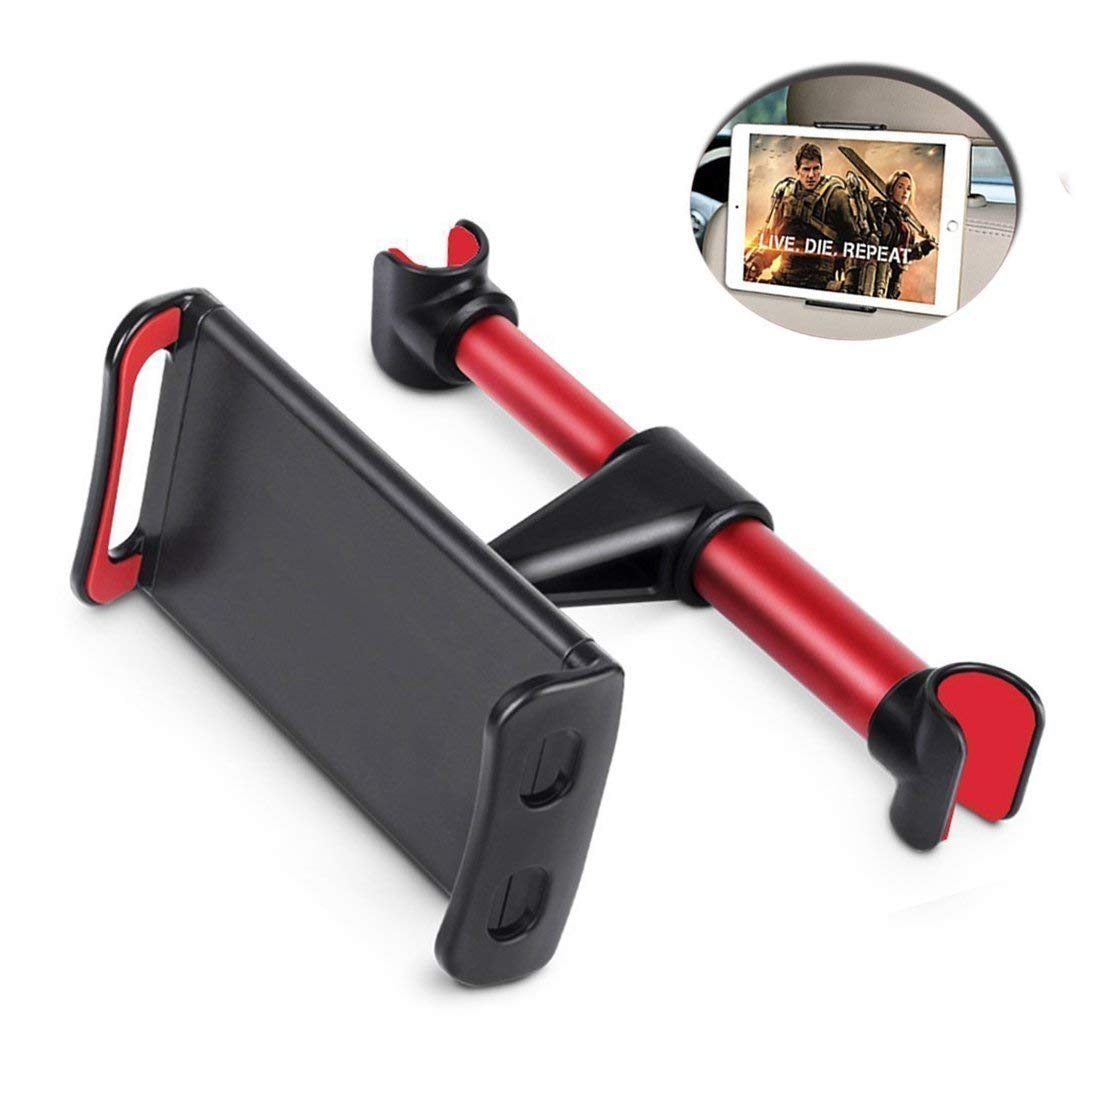 Car Headrest iPad Holder,Peipai Phone /& Tablet Car Mount Holder 360 Degree and Multi-angle Rotation Headrest Stand for 4.7-10 inch Tablet and Phone